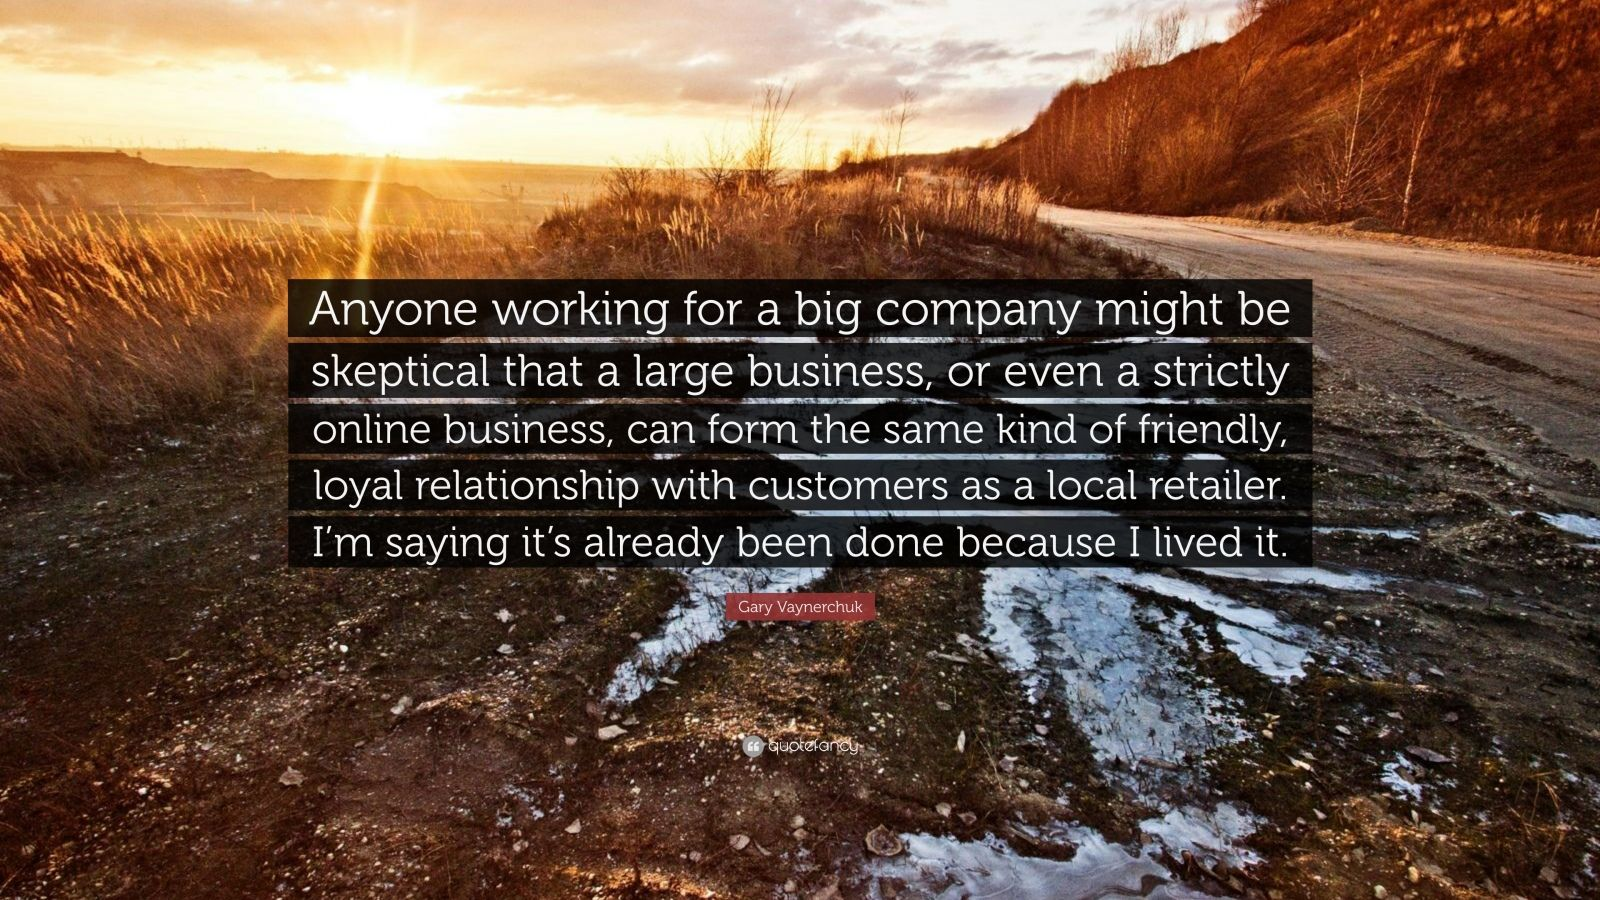 """Gary Vaynerchuk Quote: """"Anyone working for a big company might be skeptical that a large business, or even a strictly online business, can form the same kind of friendly, loyal relationship with customers as a local retailer. I'm saying it's already been done because I lived it."""""""